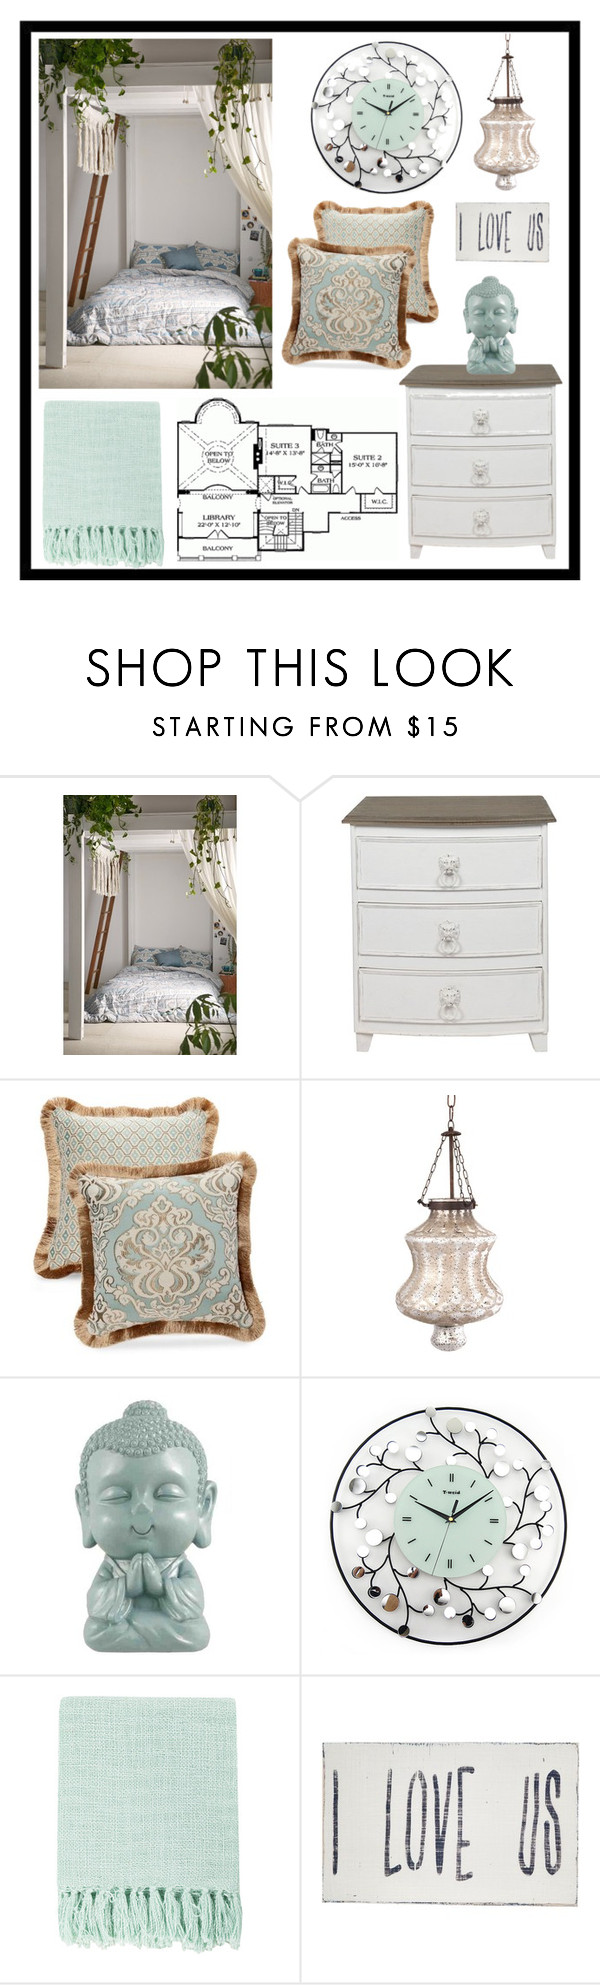 """""""Bedroom in Mint"""" by alynncameron ❤ liked on Polyvore featuring interior, interiors, interior design, home, home decor, interior decorating, Magical Thinking, Home Source International, Occa Maison and Biltmore"""